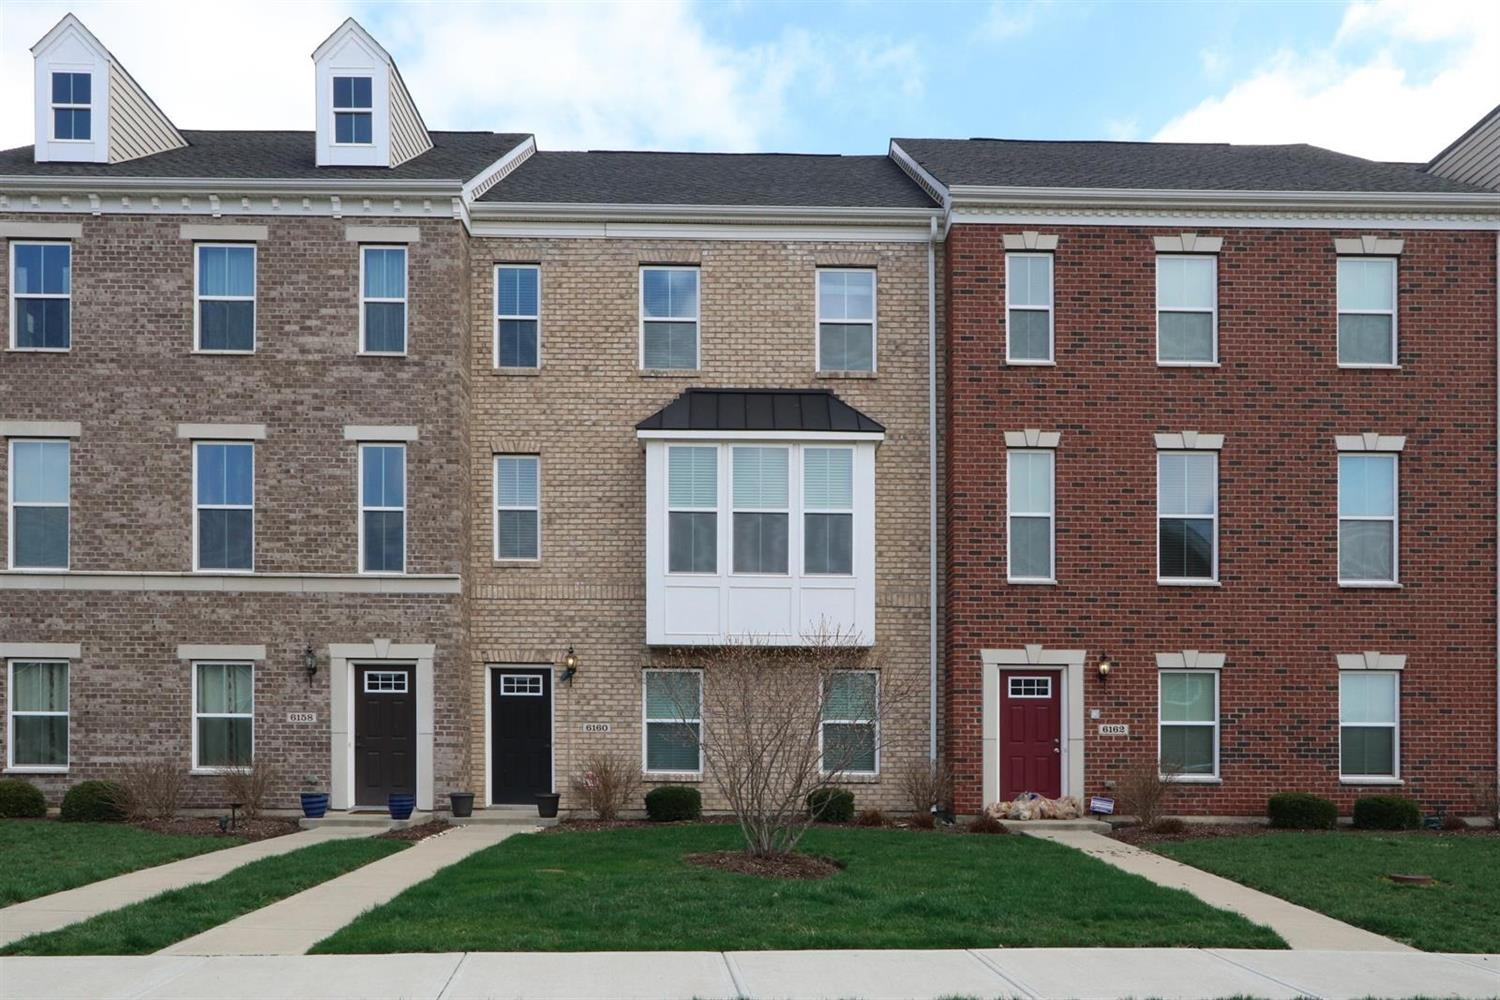 6160 Village Centre Ave West Chester Oh 45069 Mls 1655608 Coldwell Banker